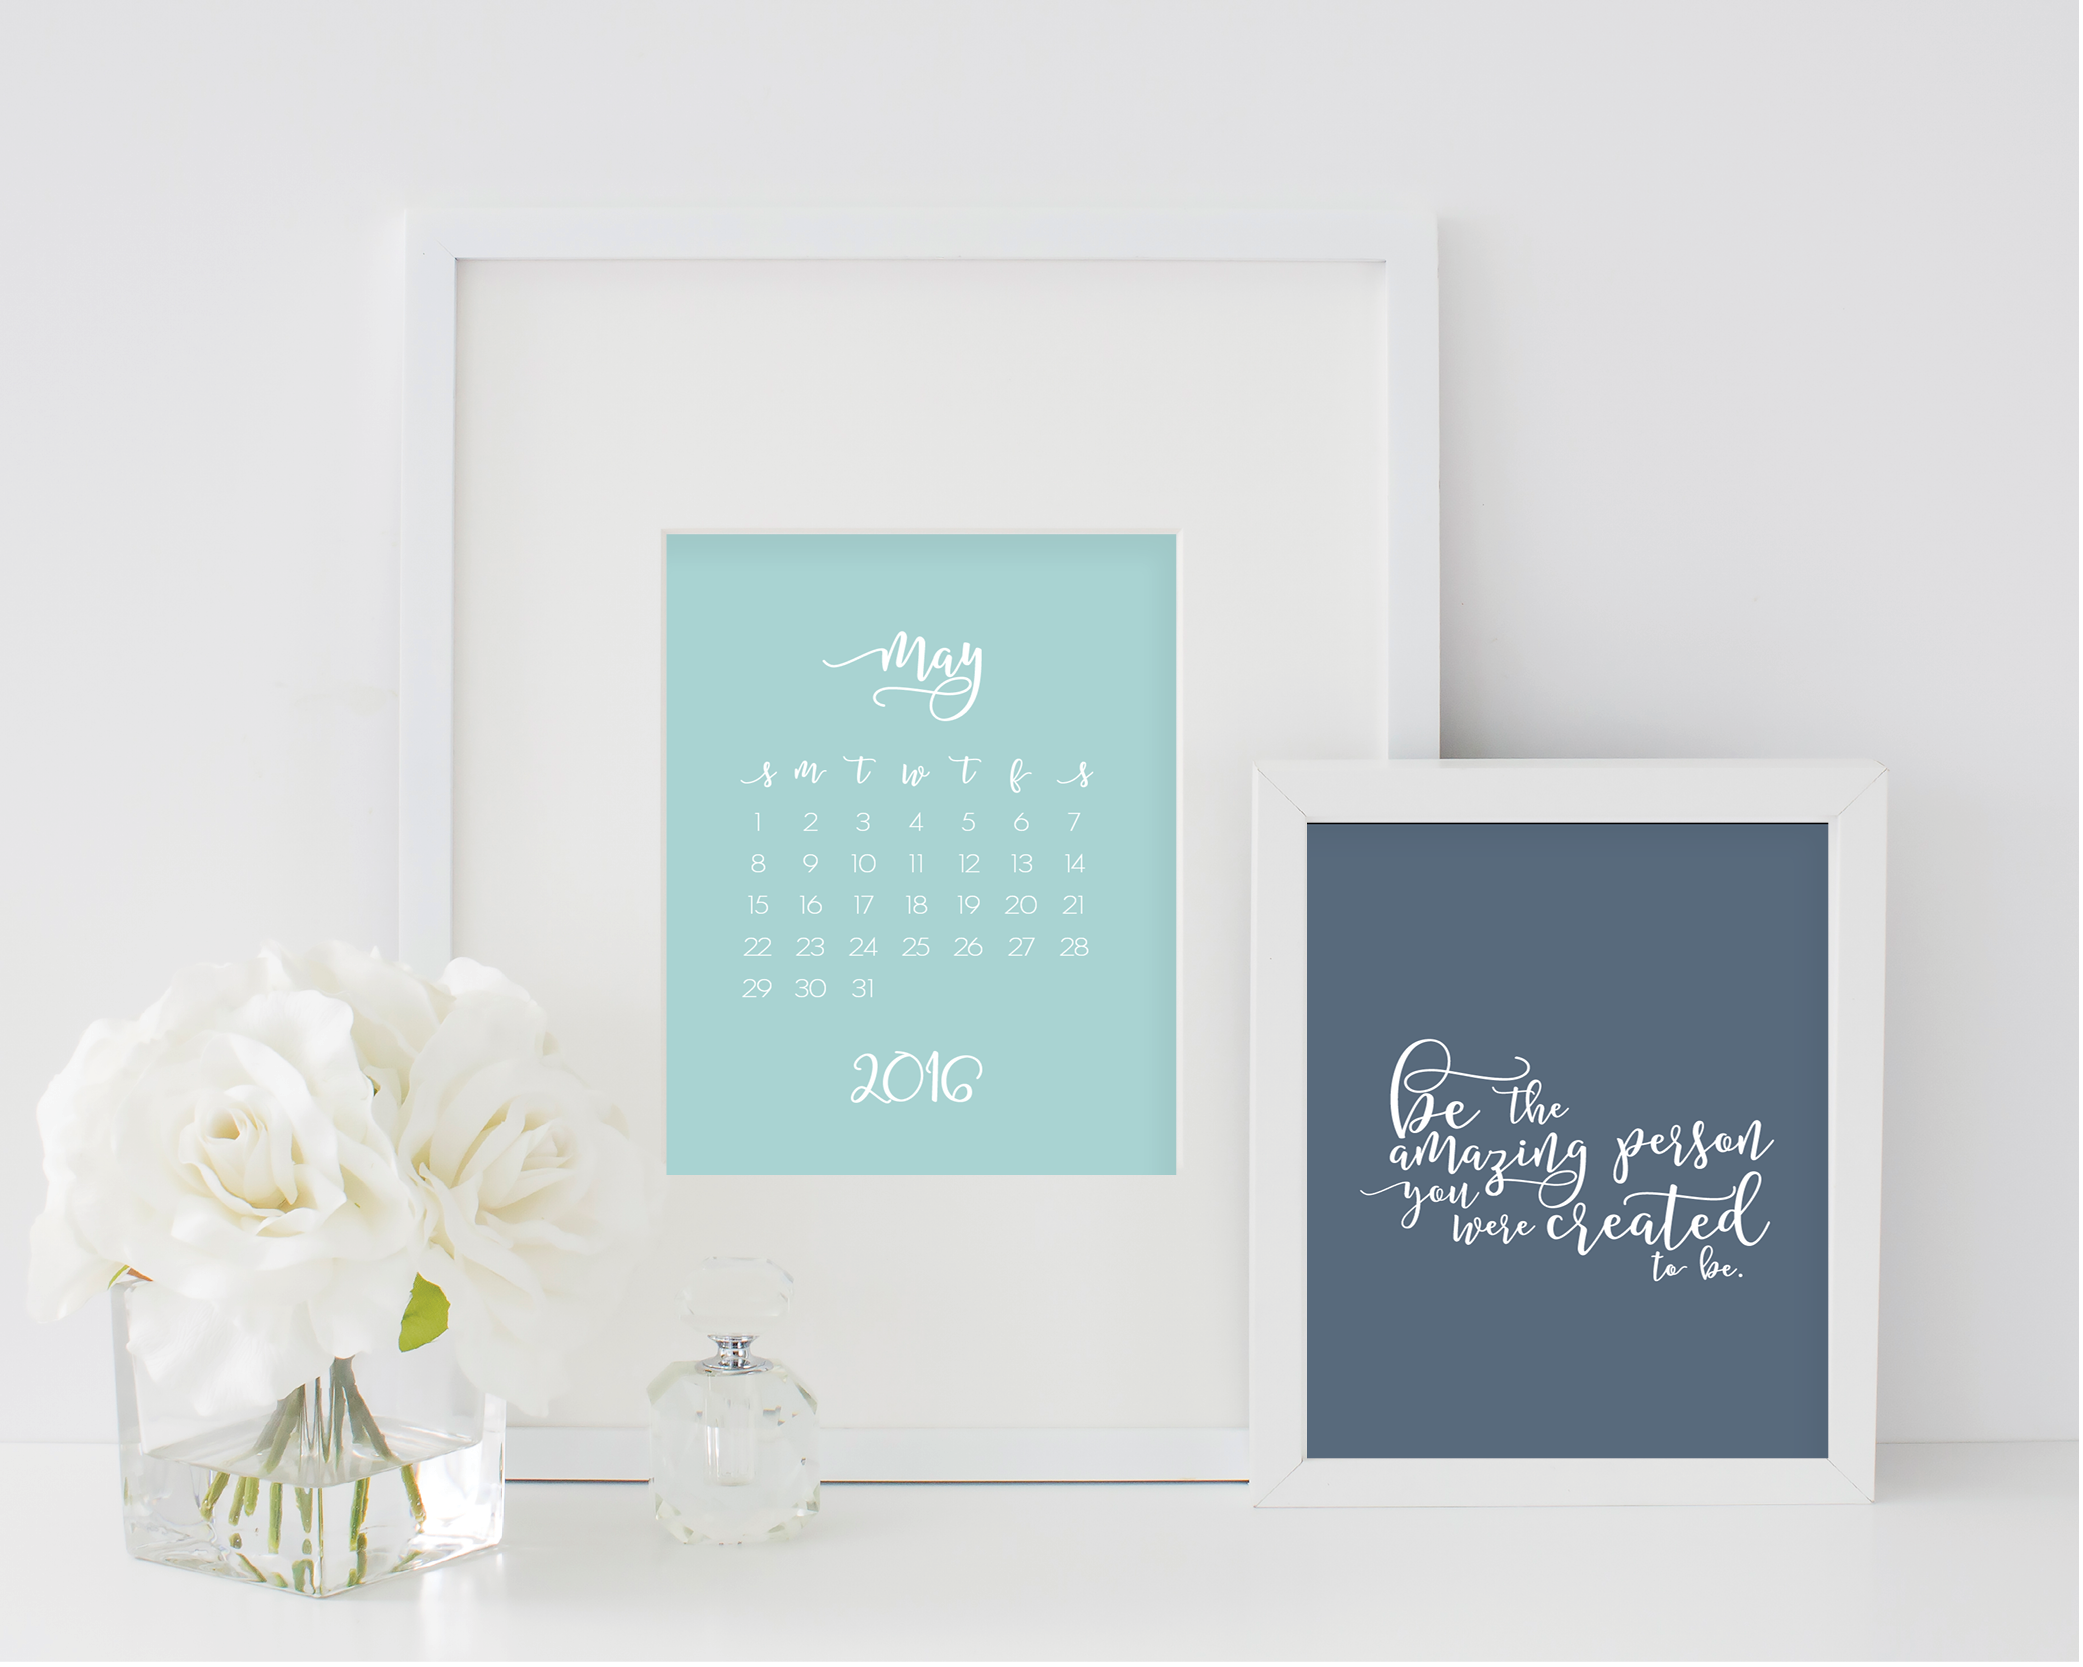 grace and serendipity - 2016 encouragement calendar